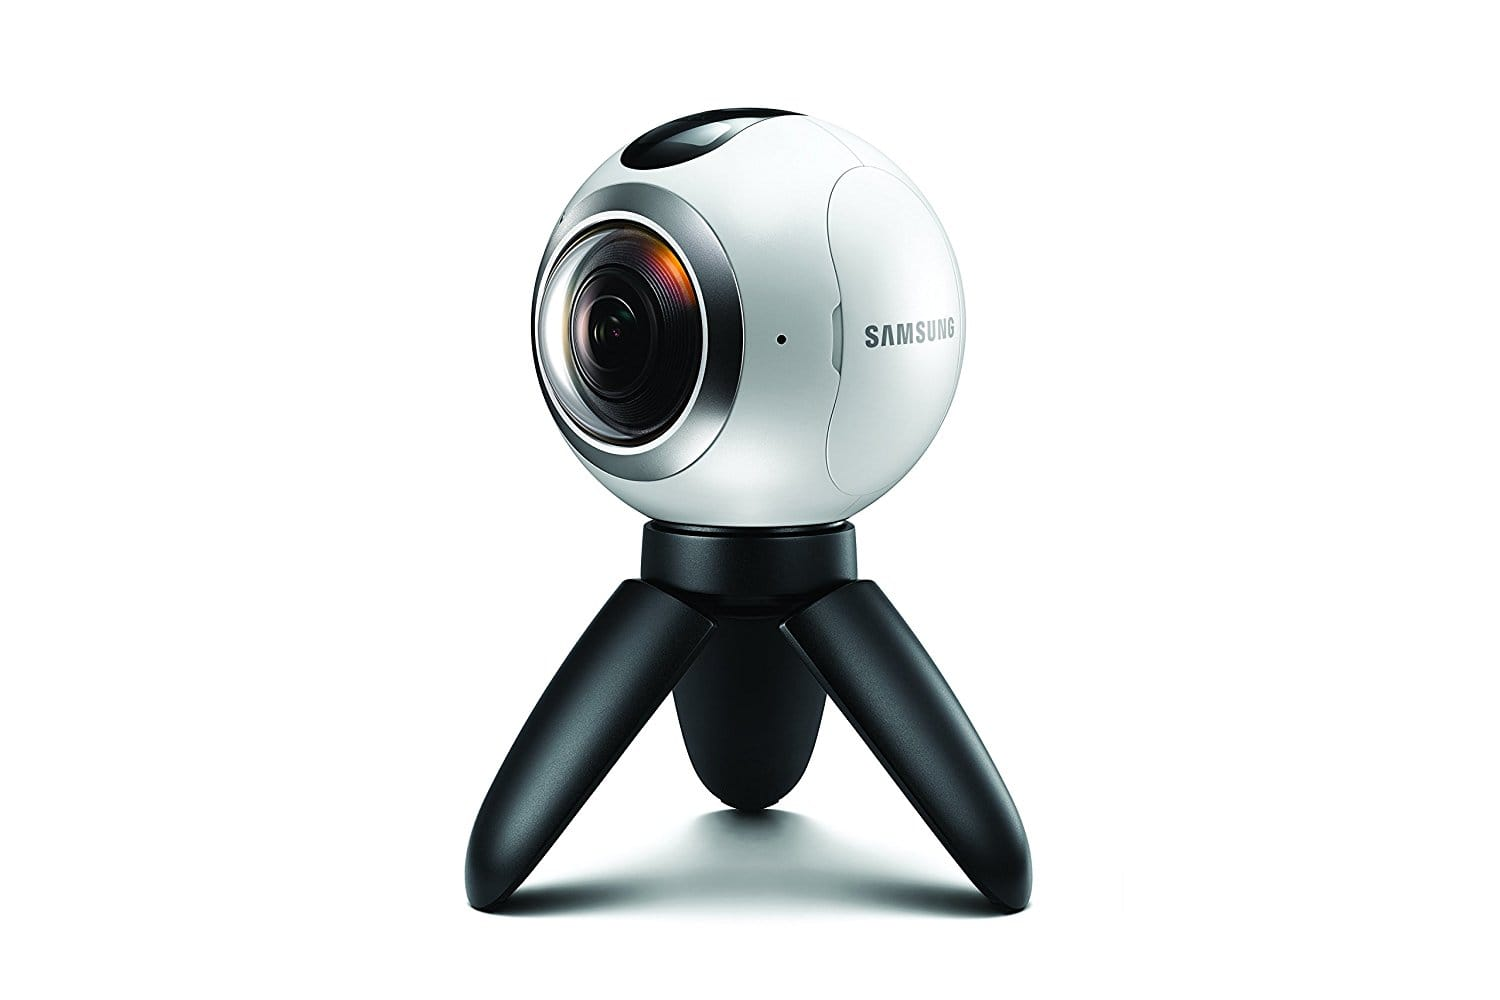 NEW LOWER PRICE! Samsung Gear 360 Real 360° High Resolution VR Camera (US Version with Warranty)